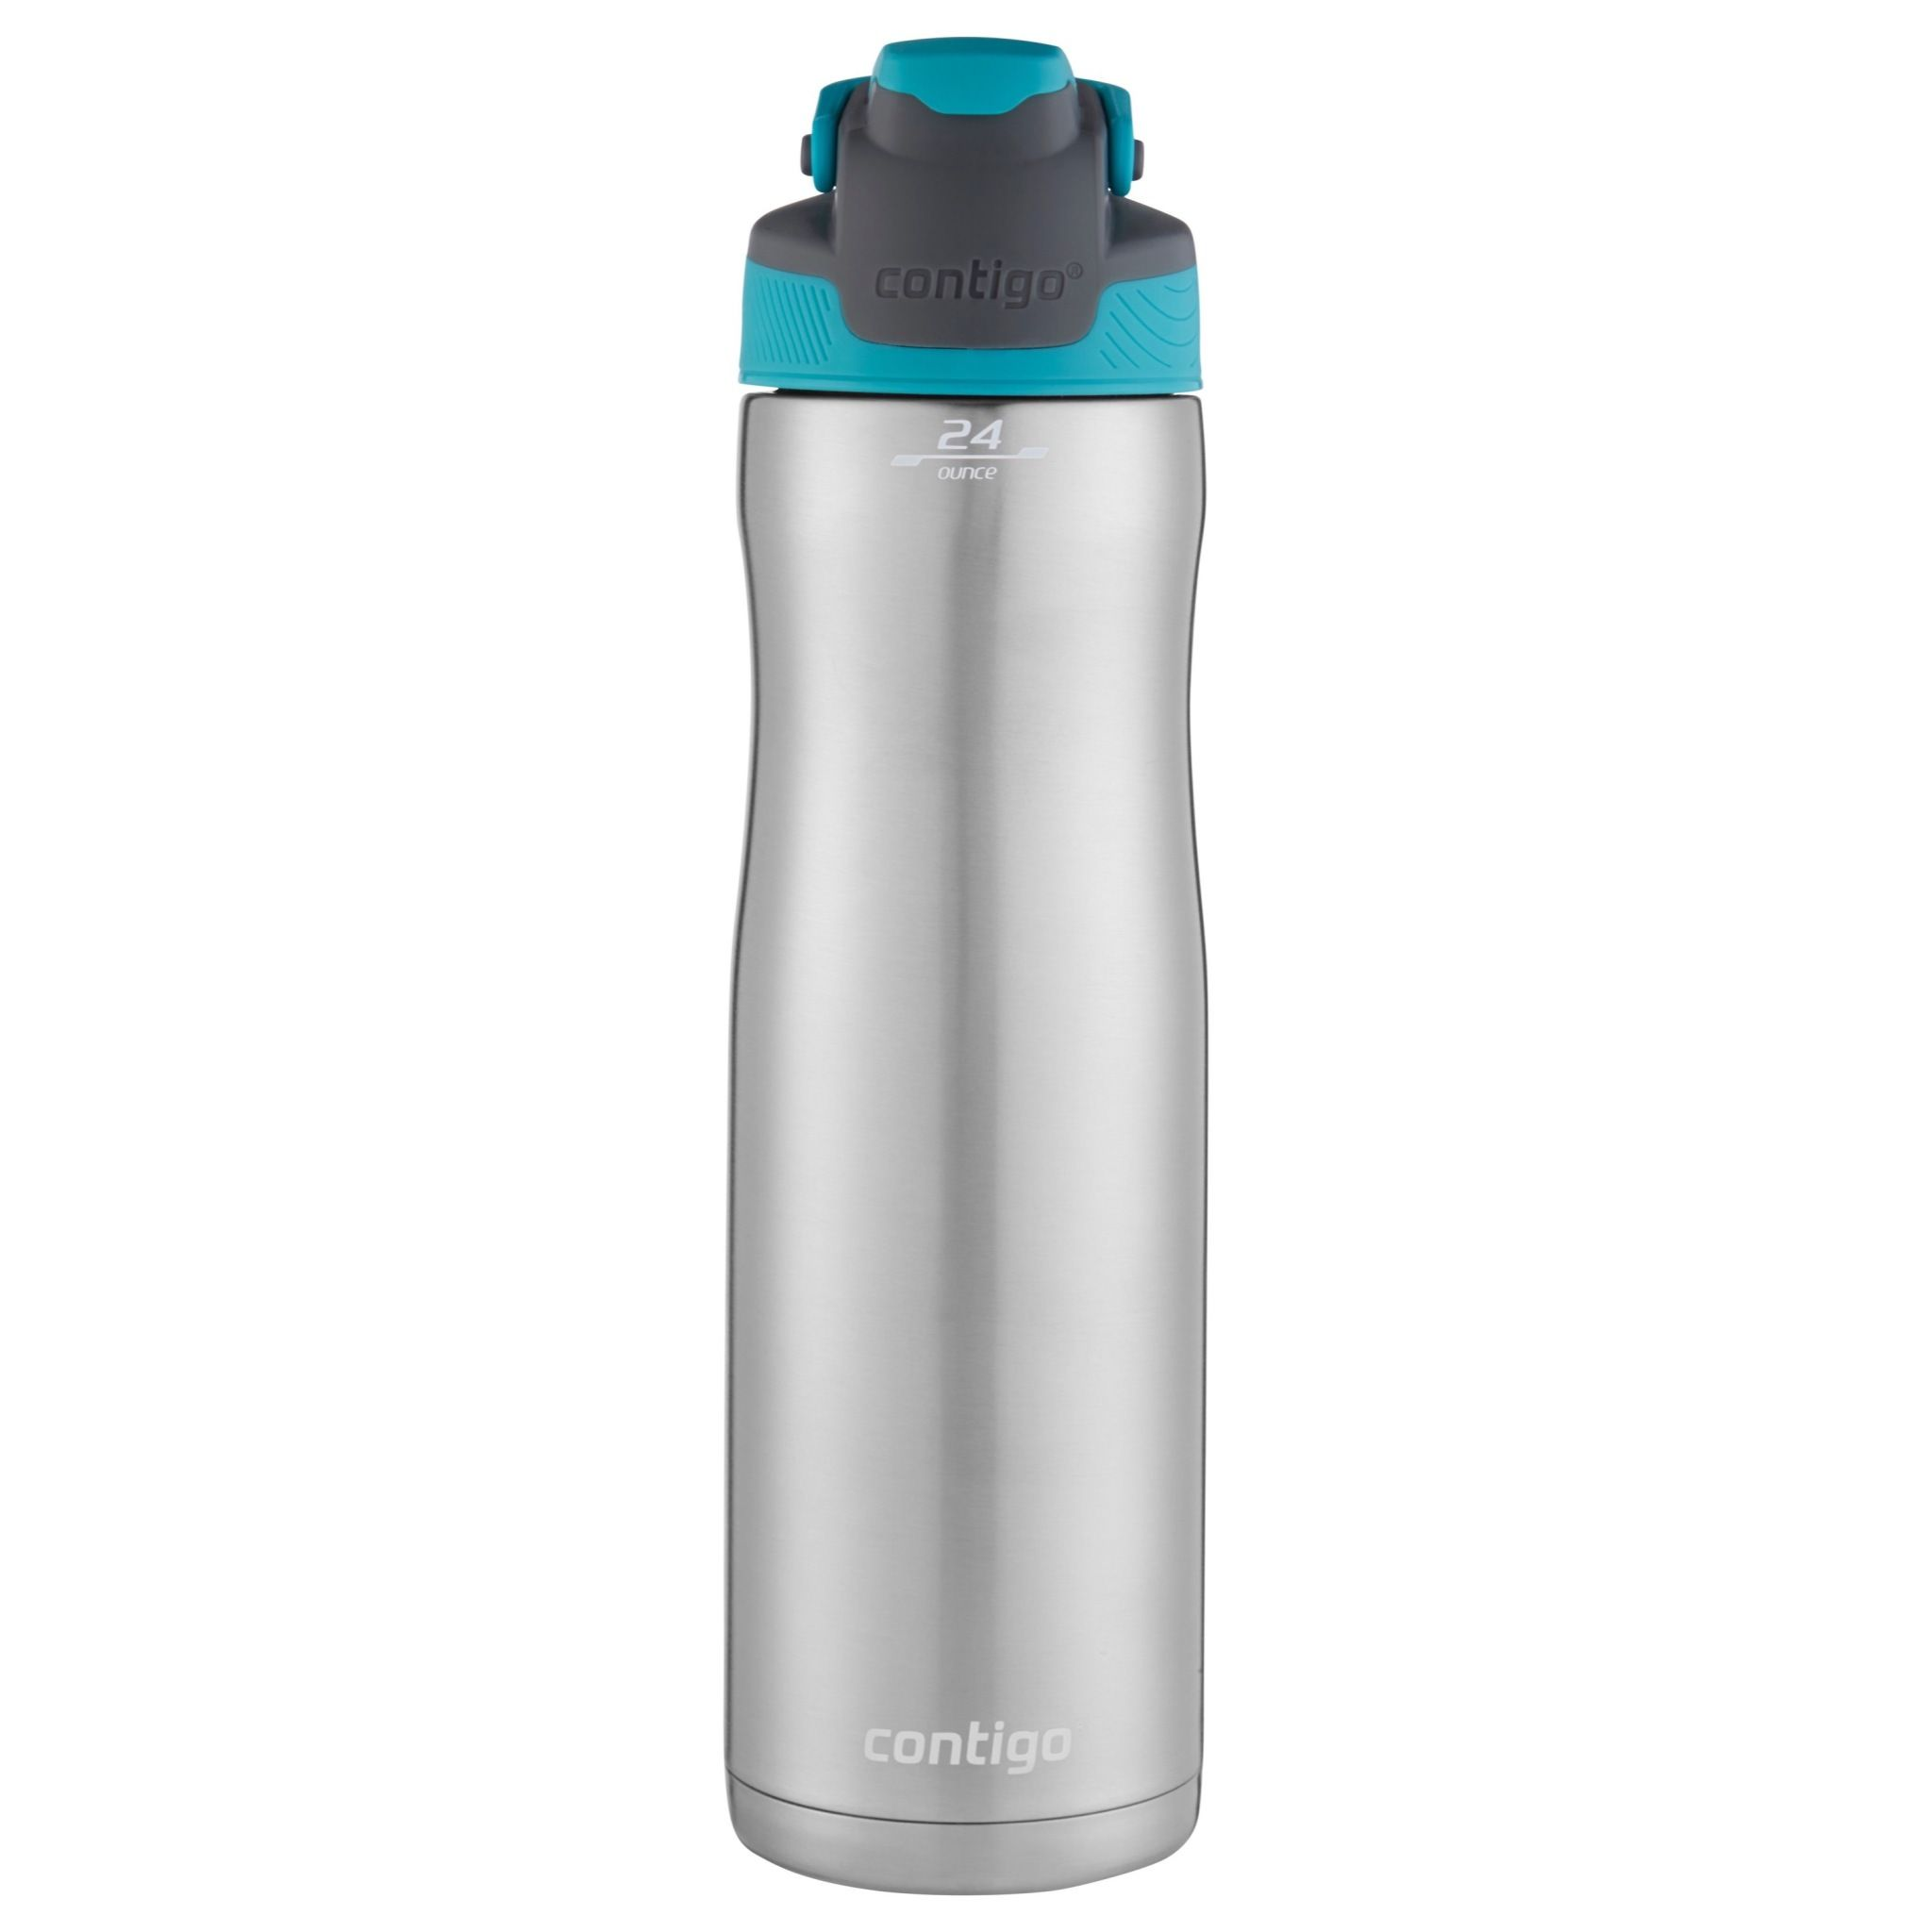 Contigo 24 Oz Autoseal Chill Stainless Steel Water Bottle Scuba Walmart Com In 2020 Hydration Bottle Water Bottle Bottle